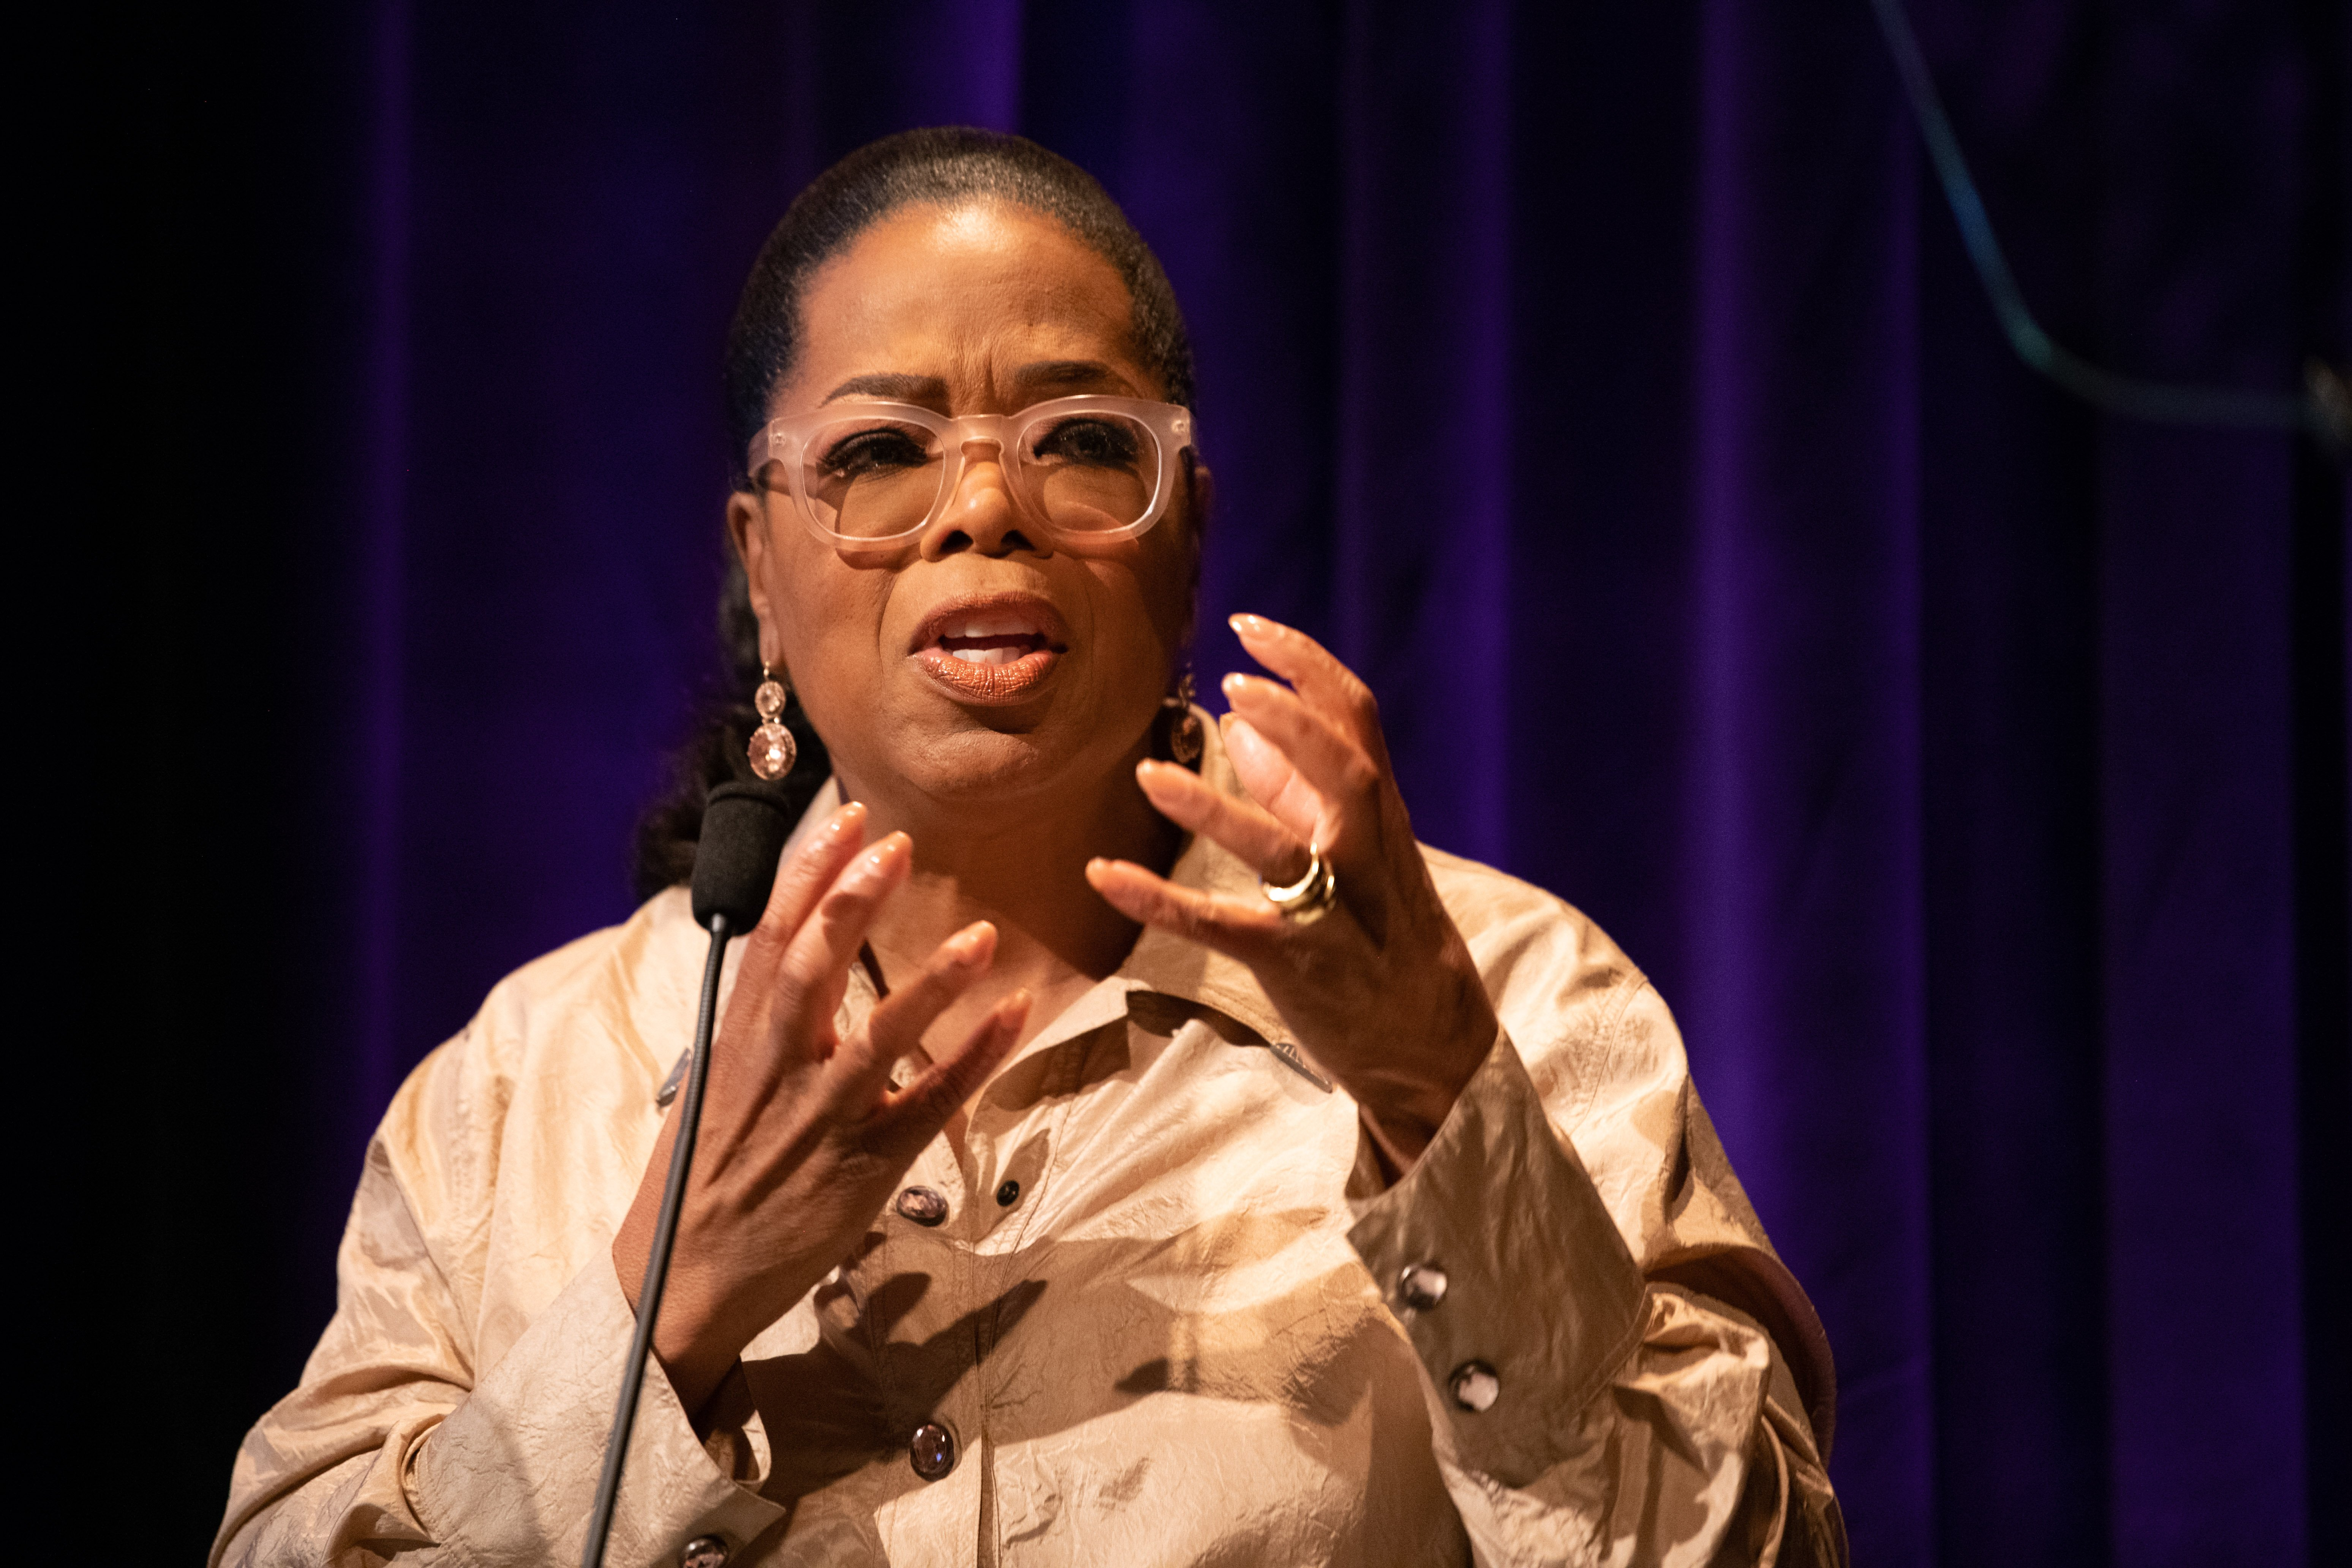 Oprah Winfrey speaks onstage at the Women's E3 Summit on June 7, 2018. | Photo: GettyImages